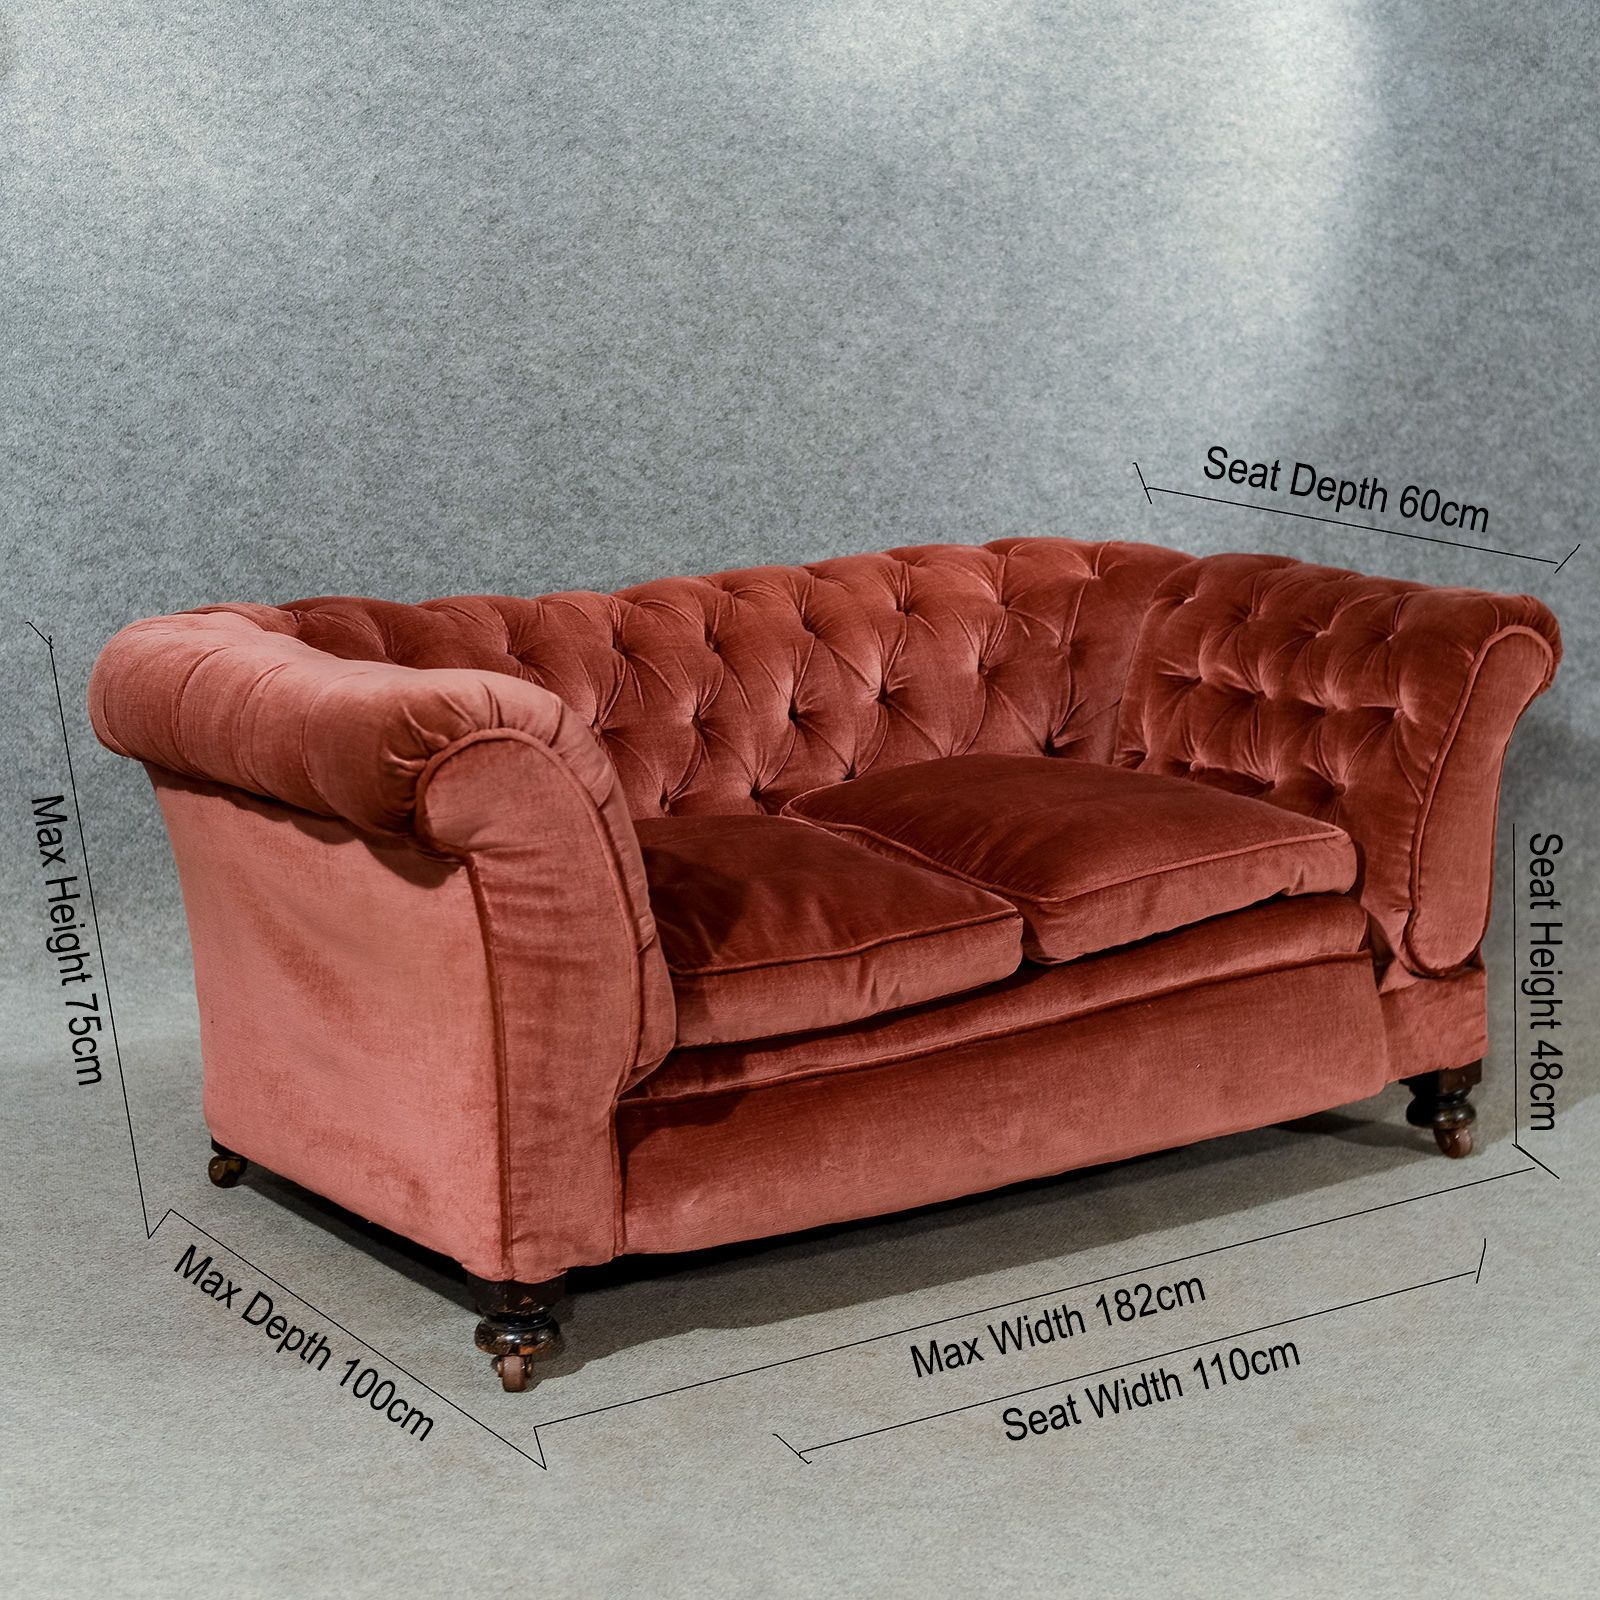 chaise sofas perth warehouse direct bayswater ikea leather sectional sofa pin by zeppy io on victorian settee